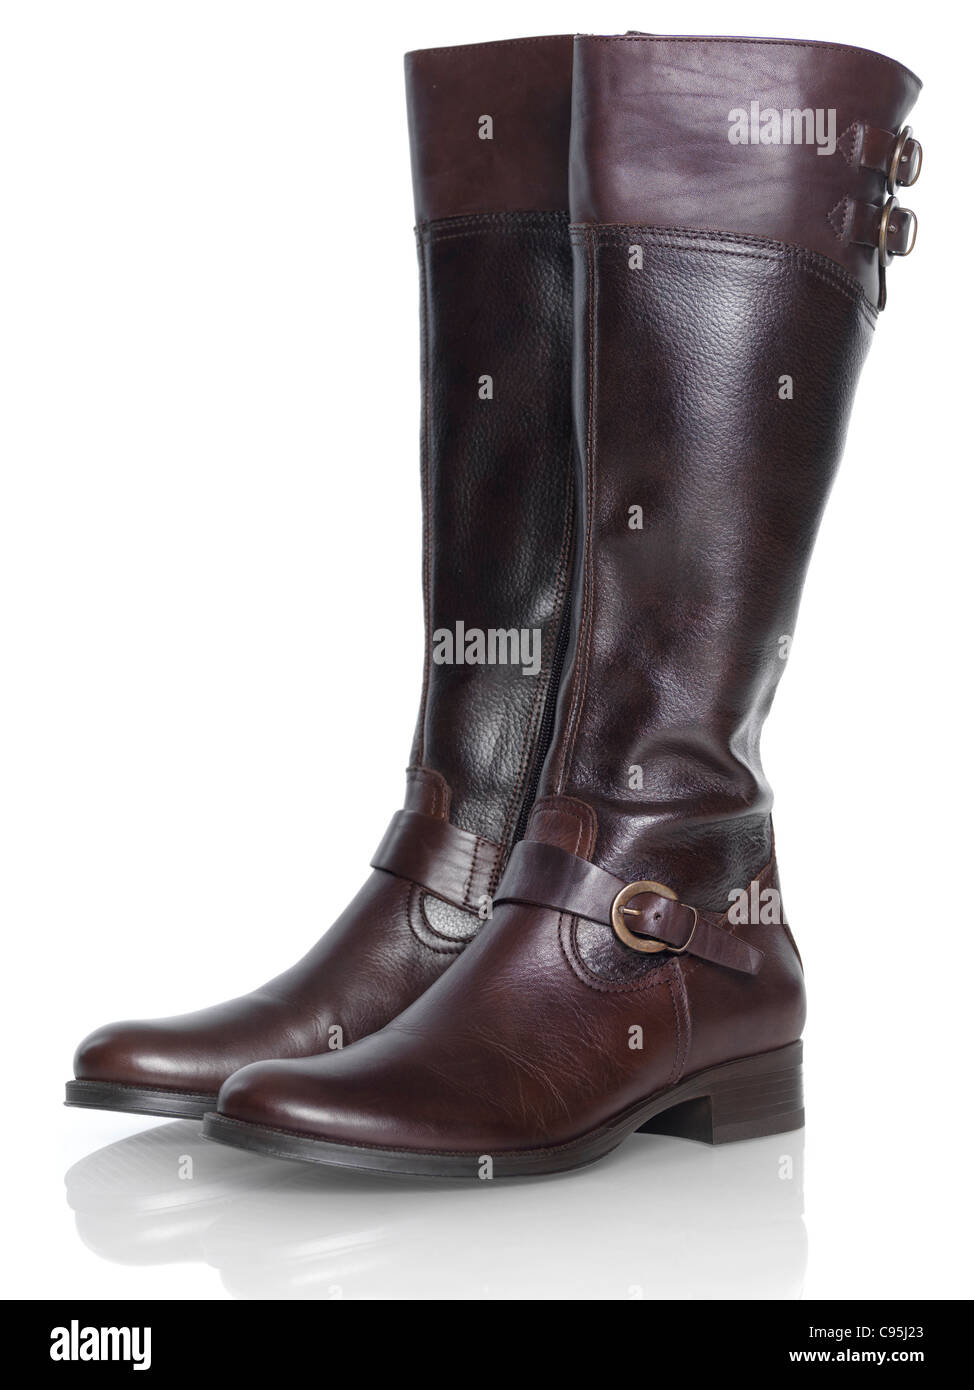 Knee-length brown leather fashion womens boots isolated on white background - Stock Image